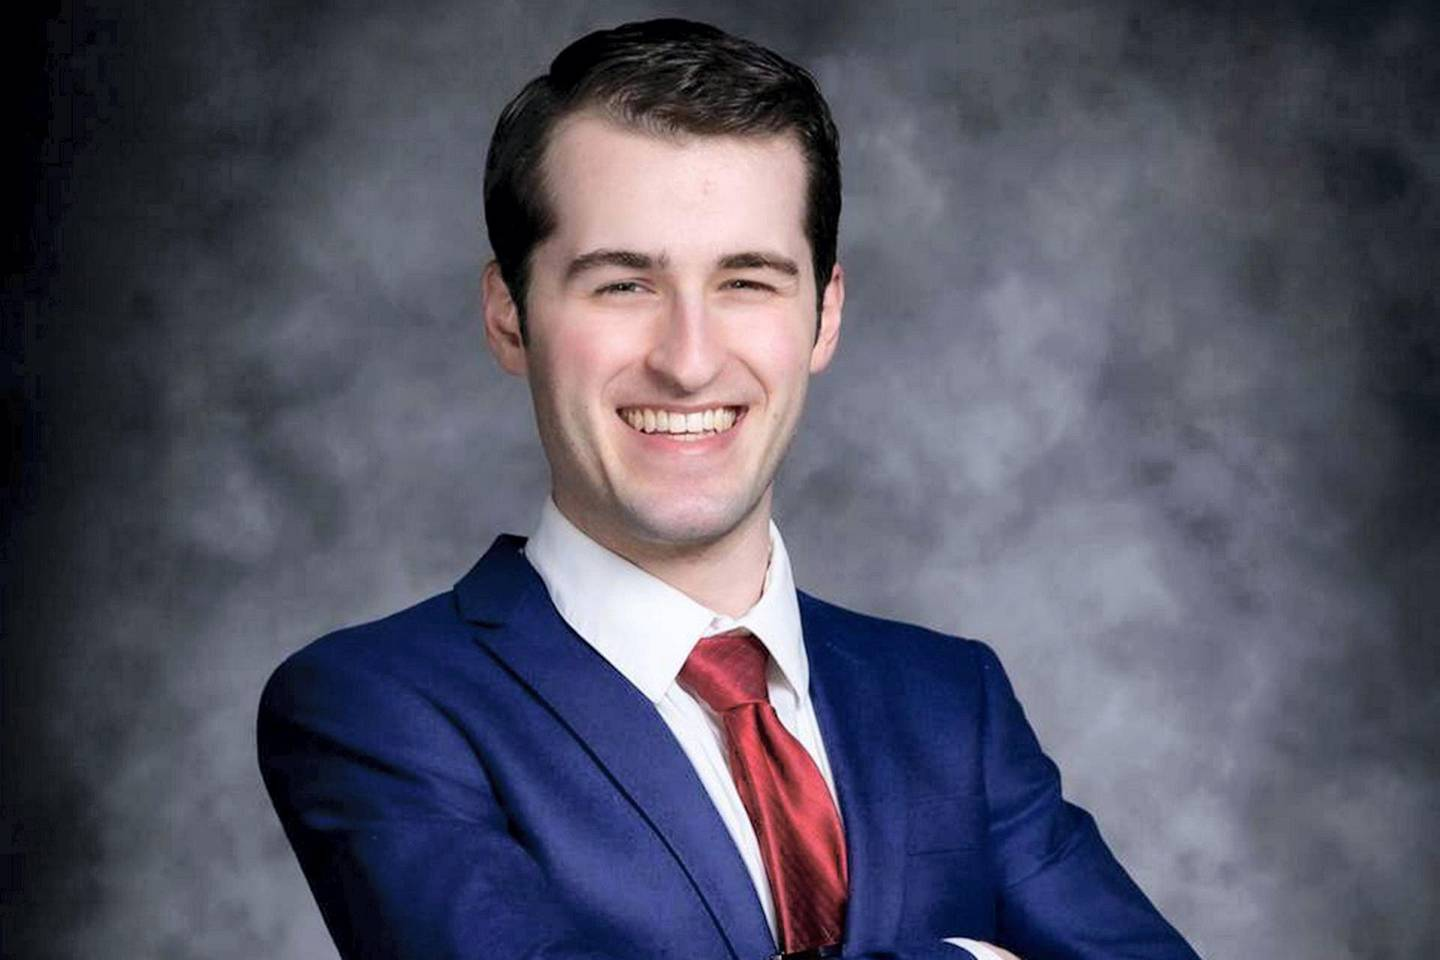 Jack Duffley, 24, began investing when he turned 18 with a few hundred dollars from a summer job that went into a retirement account. Courtesy: Jack Duffley